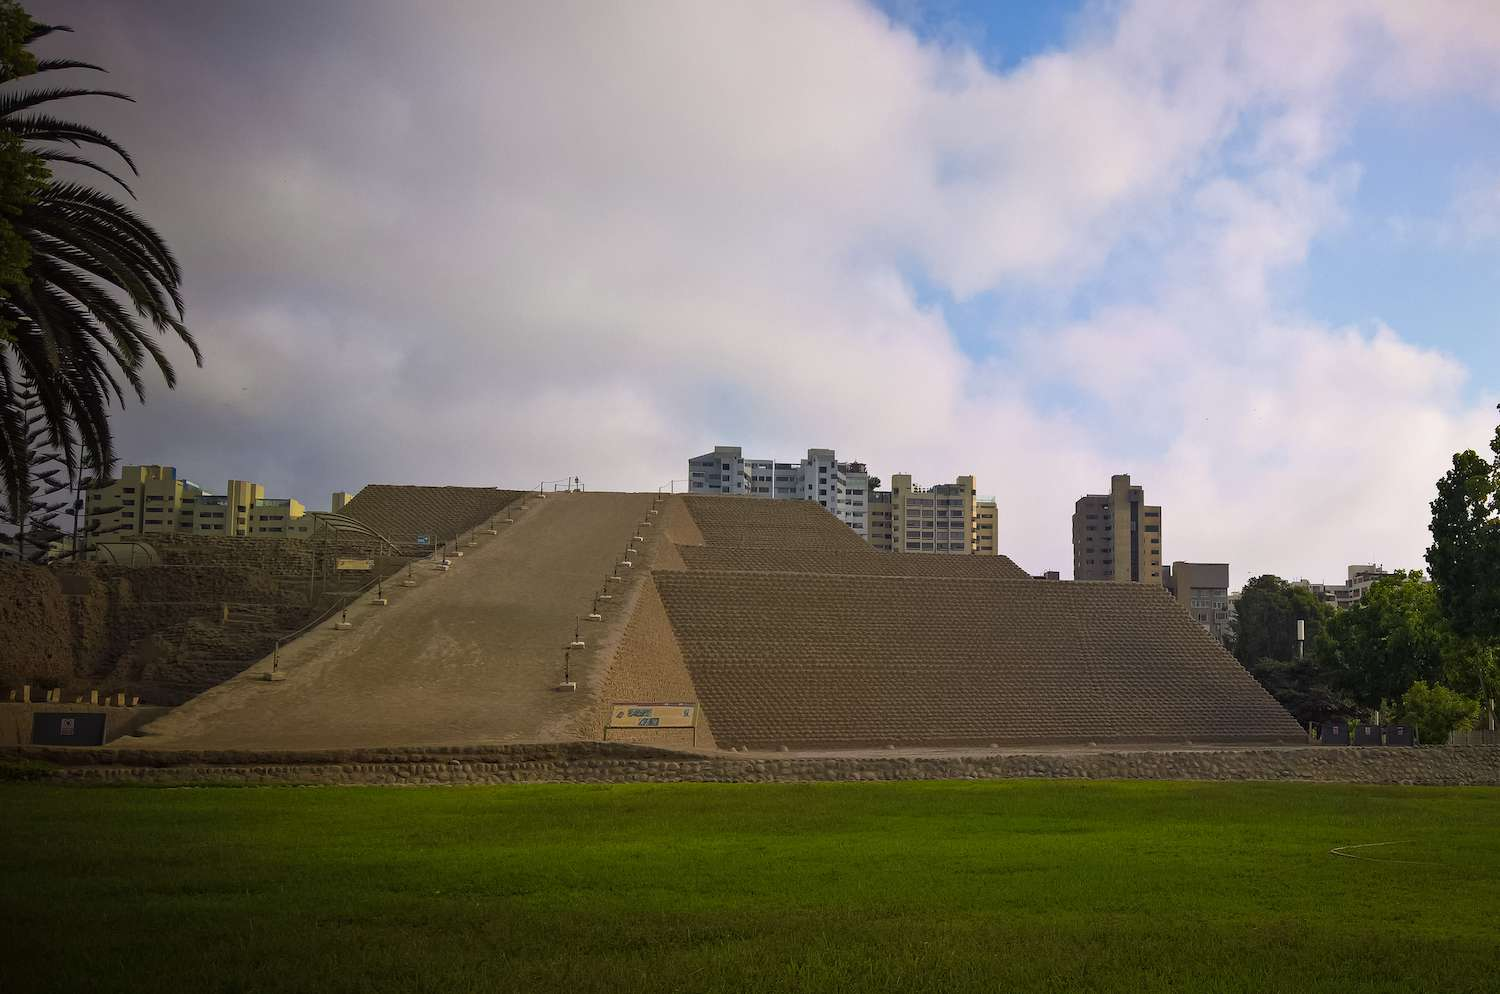 Huaca Huallamarca in Lima, Peru with modern high-rise buildings in the background